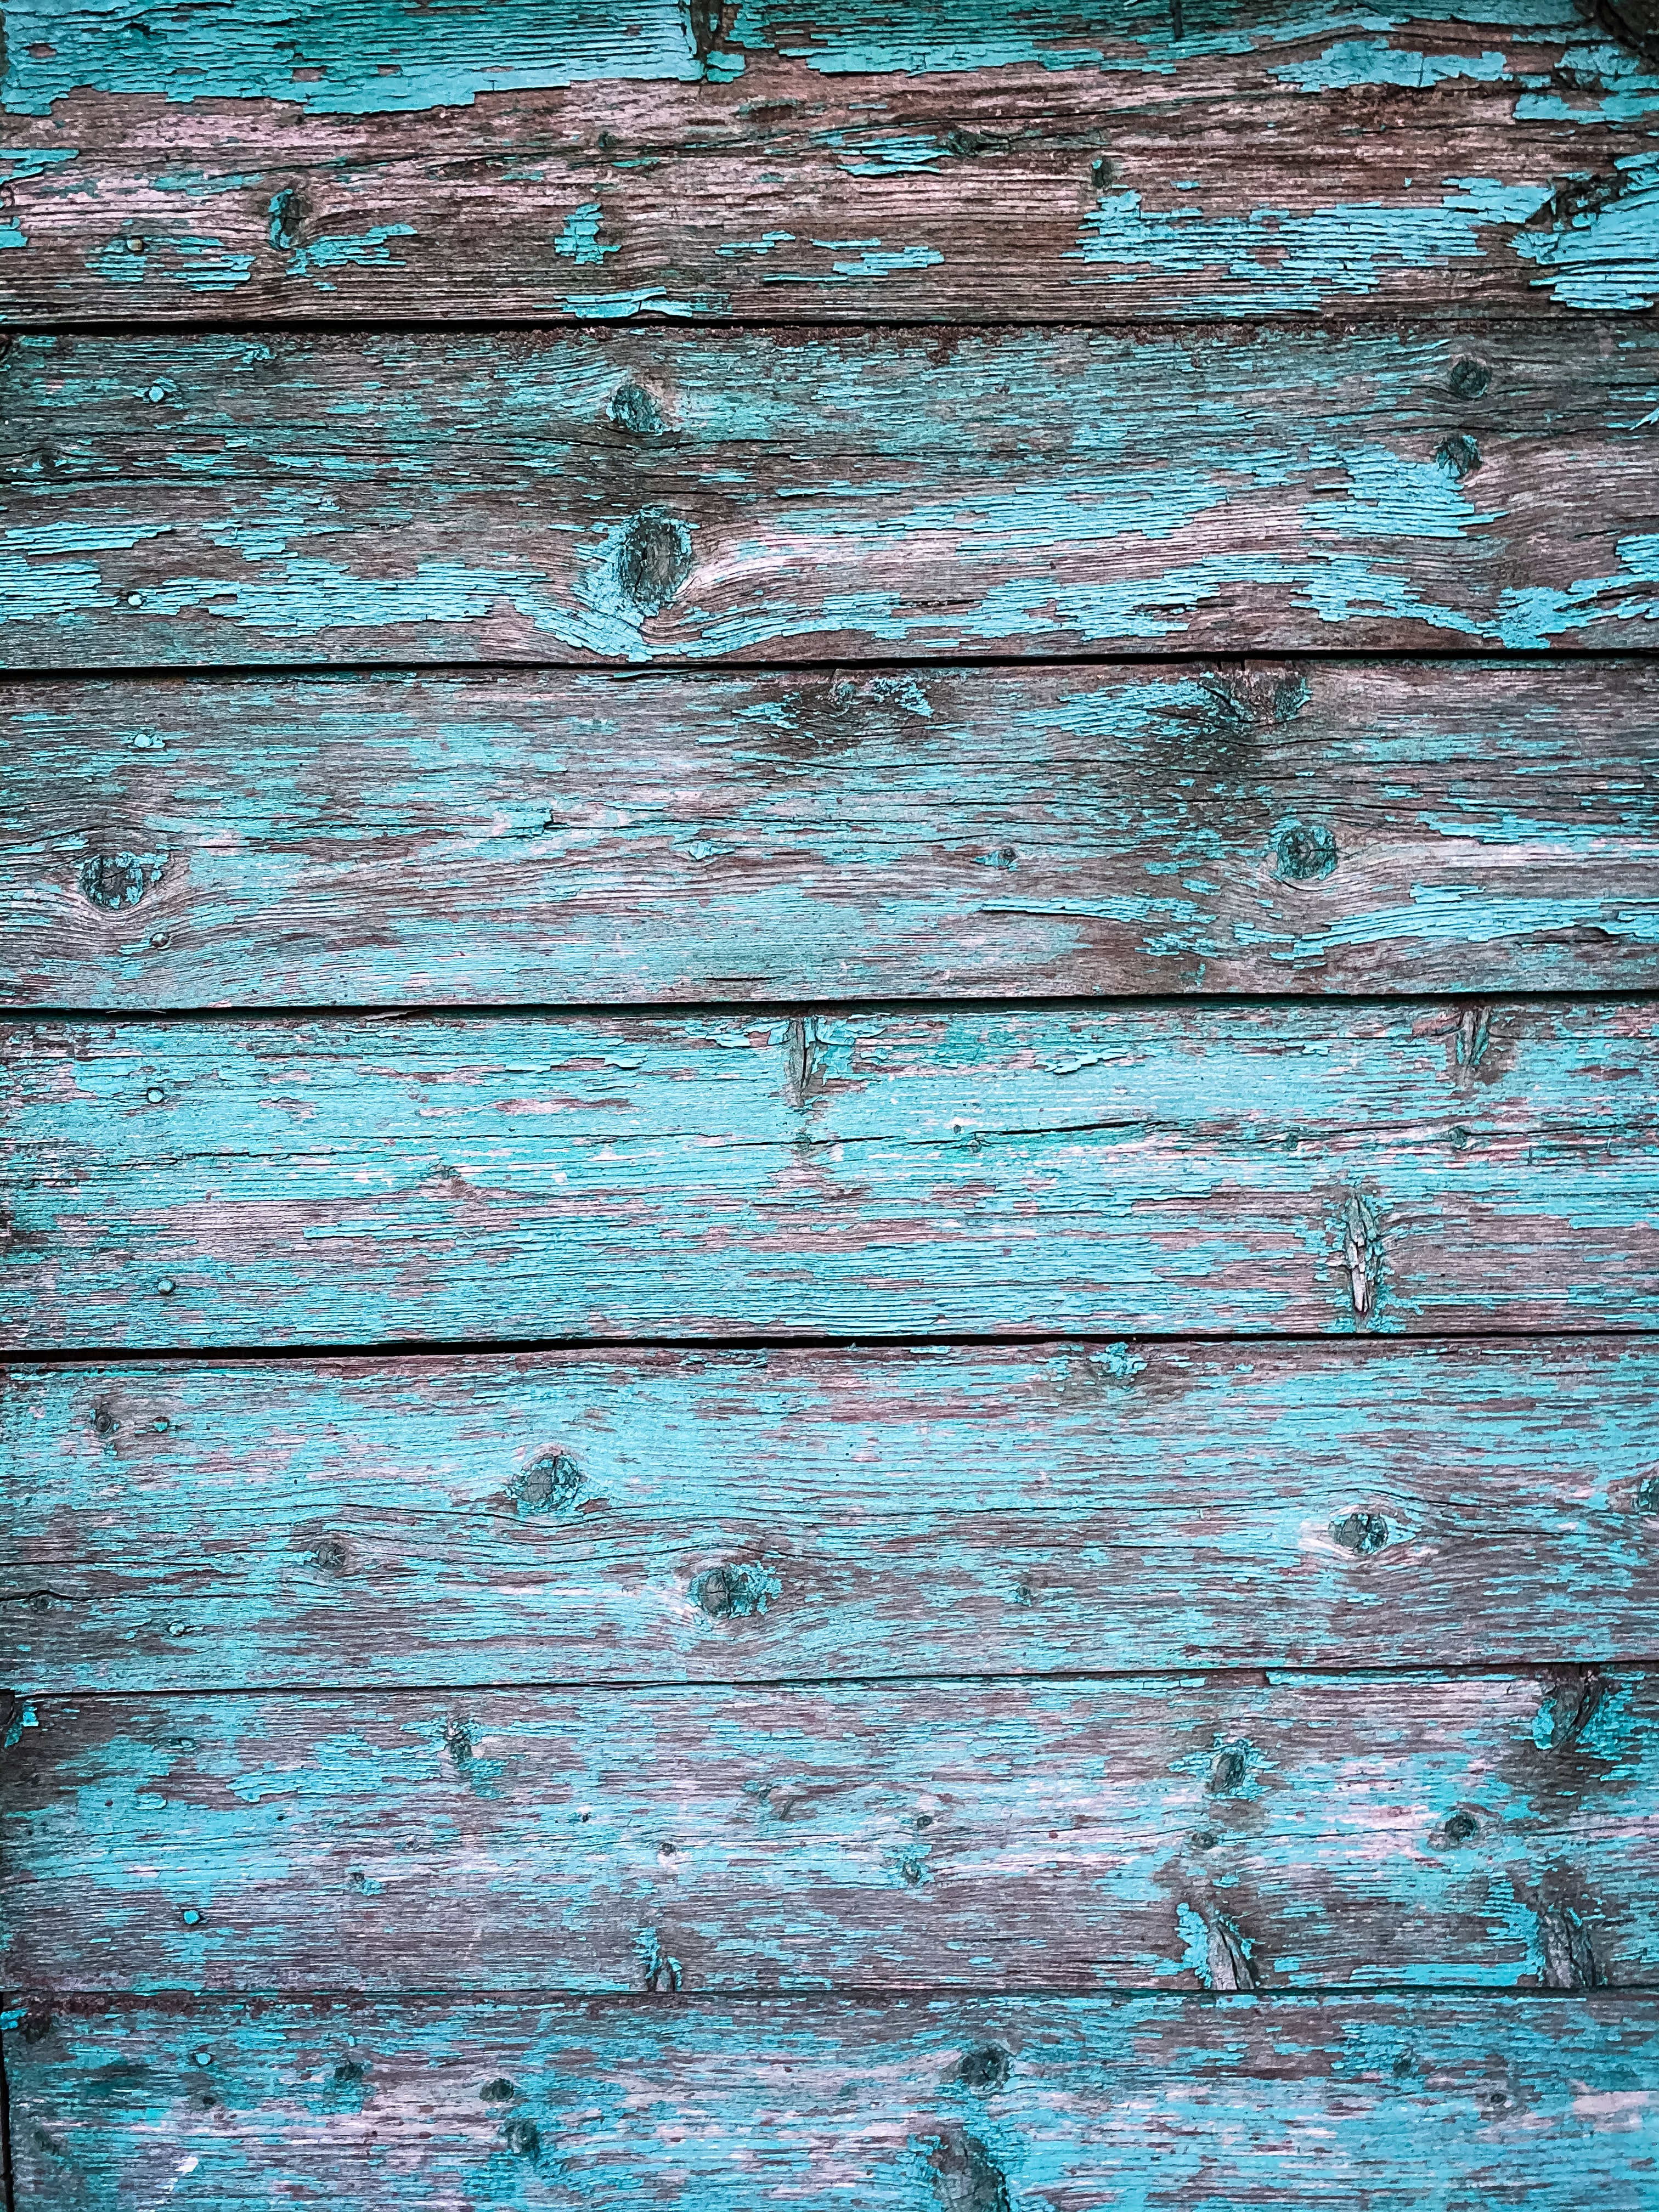 144397 download wallpaper Textures, Texture, Surface, Planks, Board, Wood, Wooden, Paint, Old screensavers and pictures for free